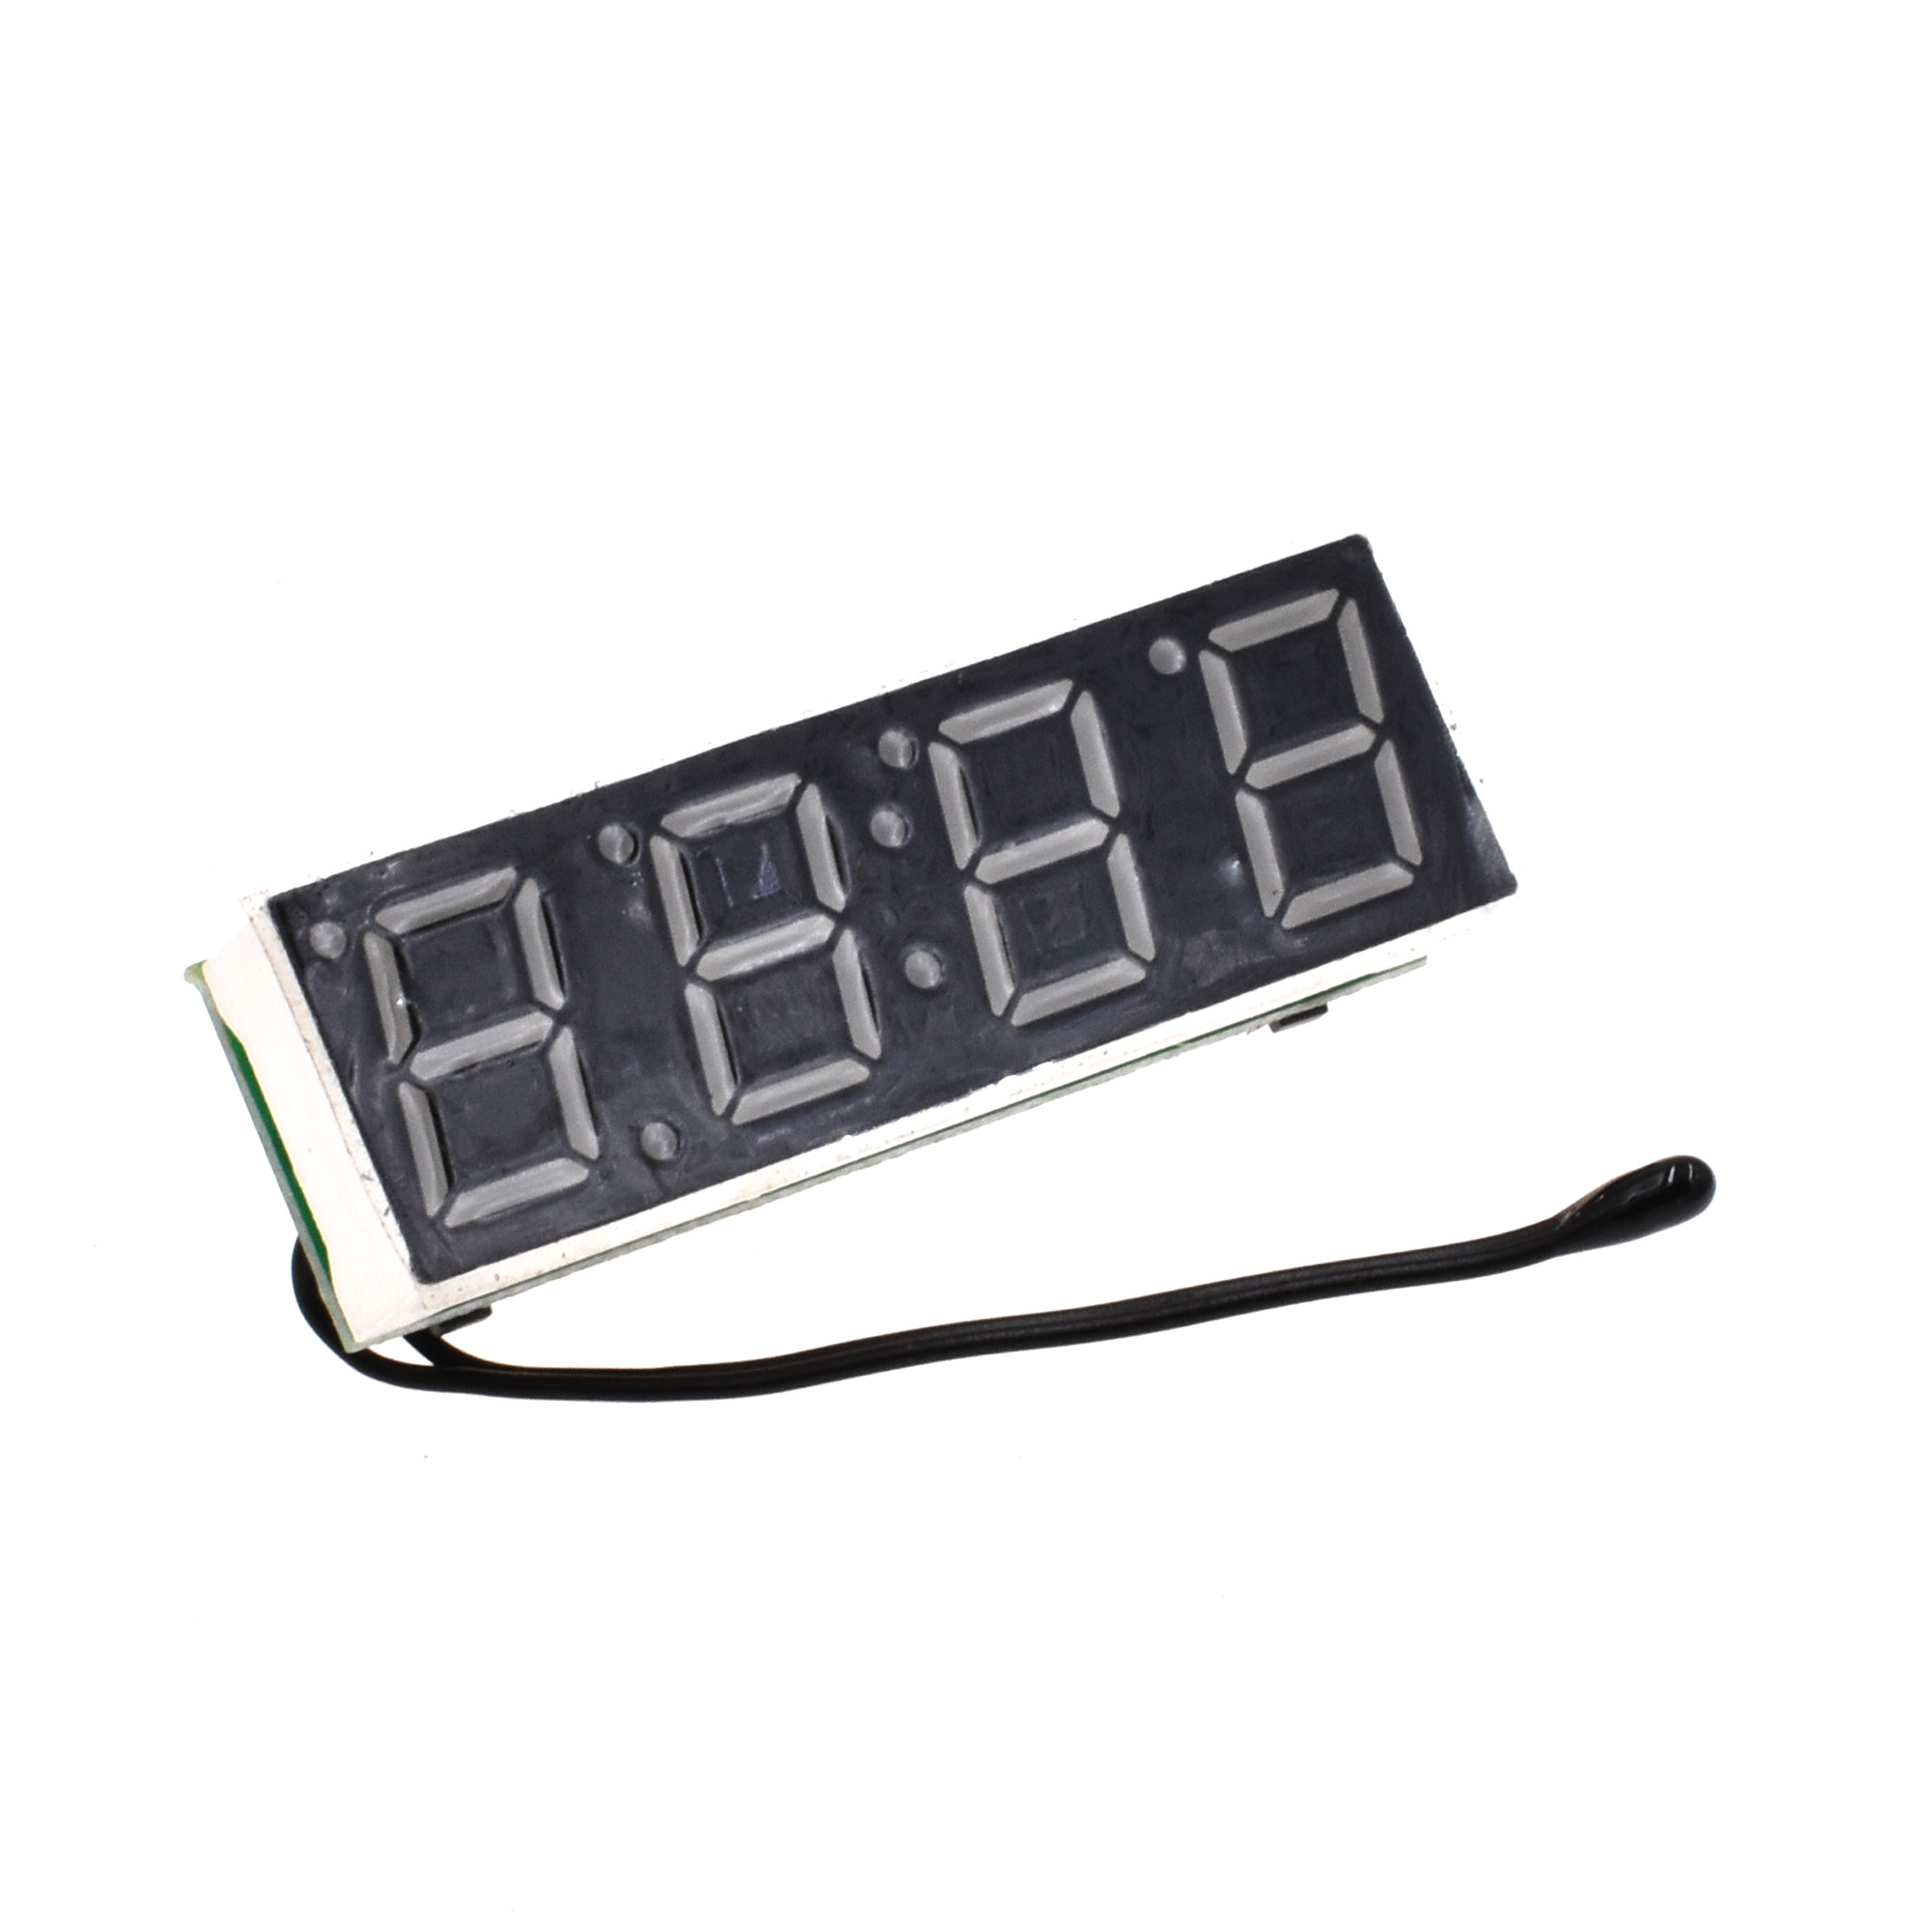 036 Rtc Ds1302 Real Time Clock Module Electronic Kit Sop 8 Solar Warning Light 5 Led Unassembled Circuit Board Ebay Note We Not Offer Any Battery Dimension Length 402mmwidth 128mmthickness 14mm Operating Voltage3v5v